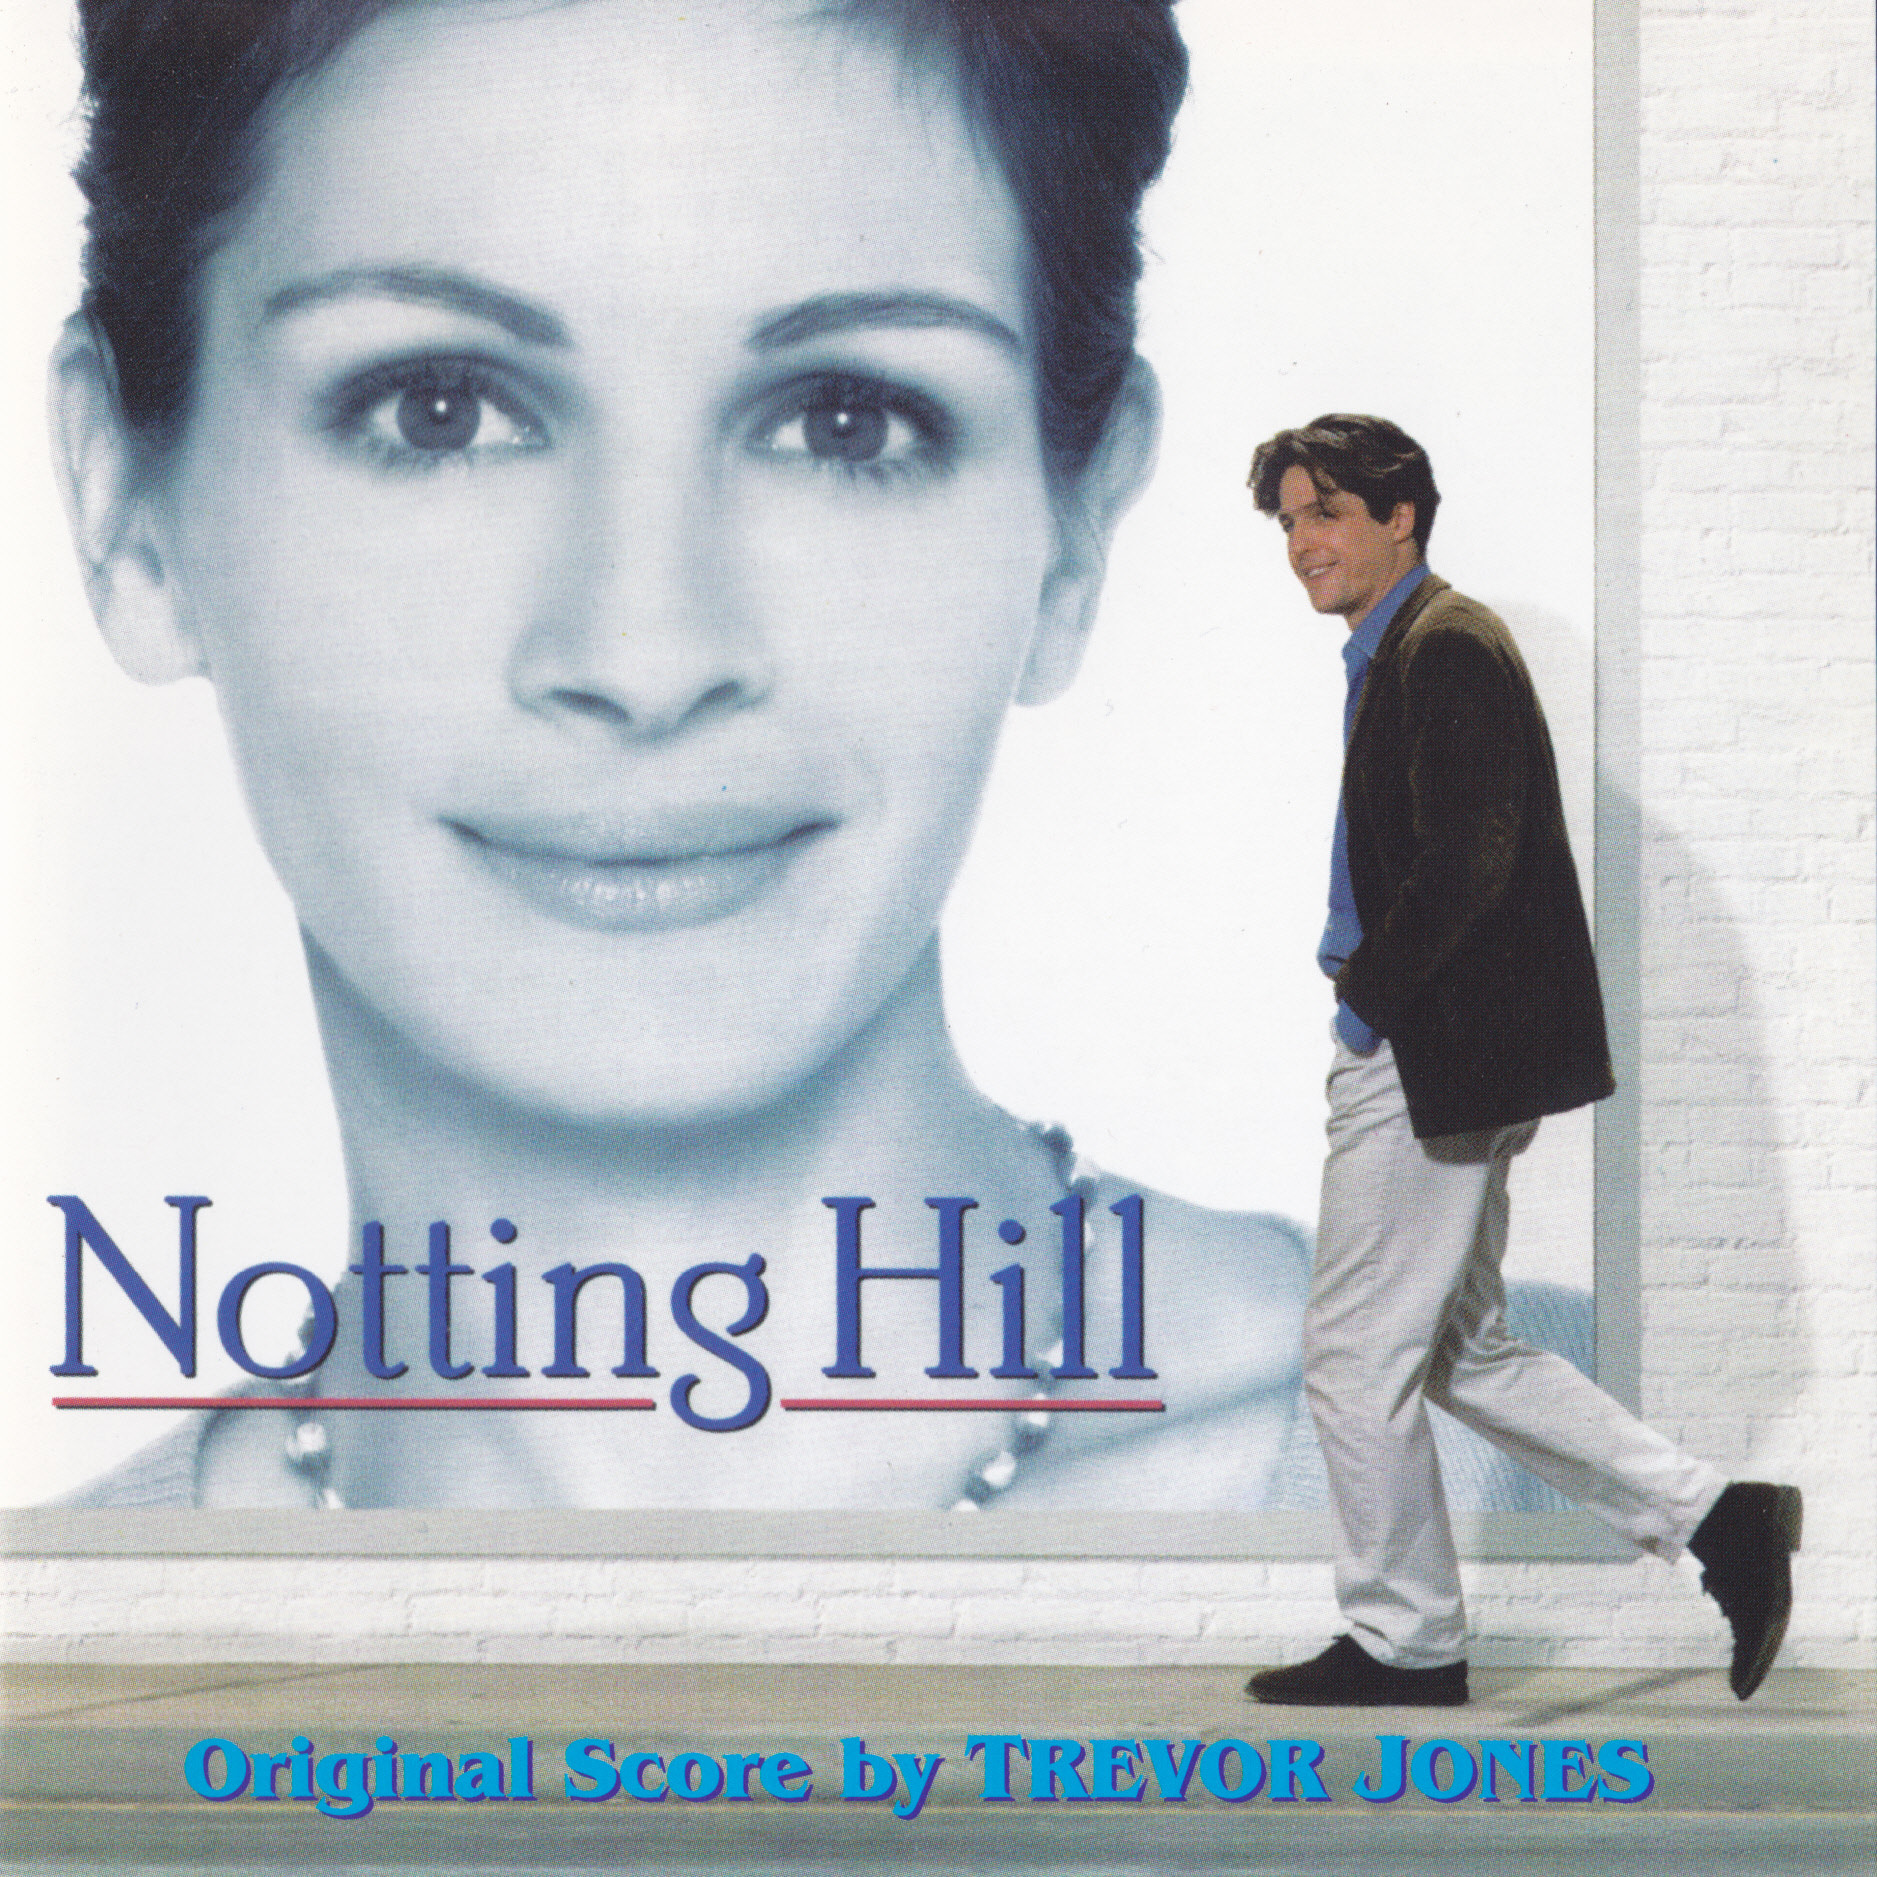 film music site notting hill arachnophobia soundtrack trevor jones bootleg 2000. Black Bedroom Furniture Sets. Home Design Ideas